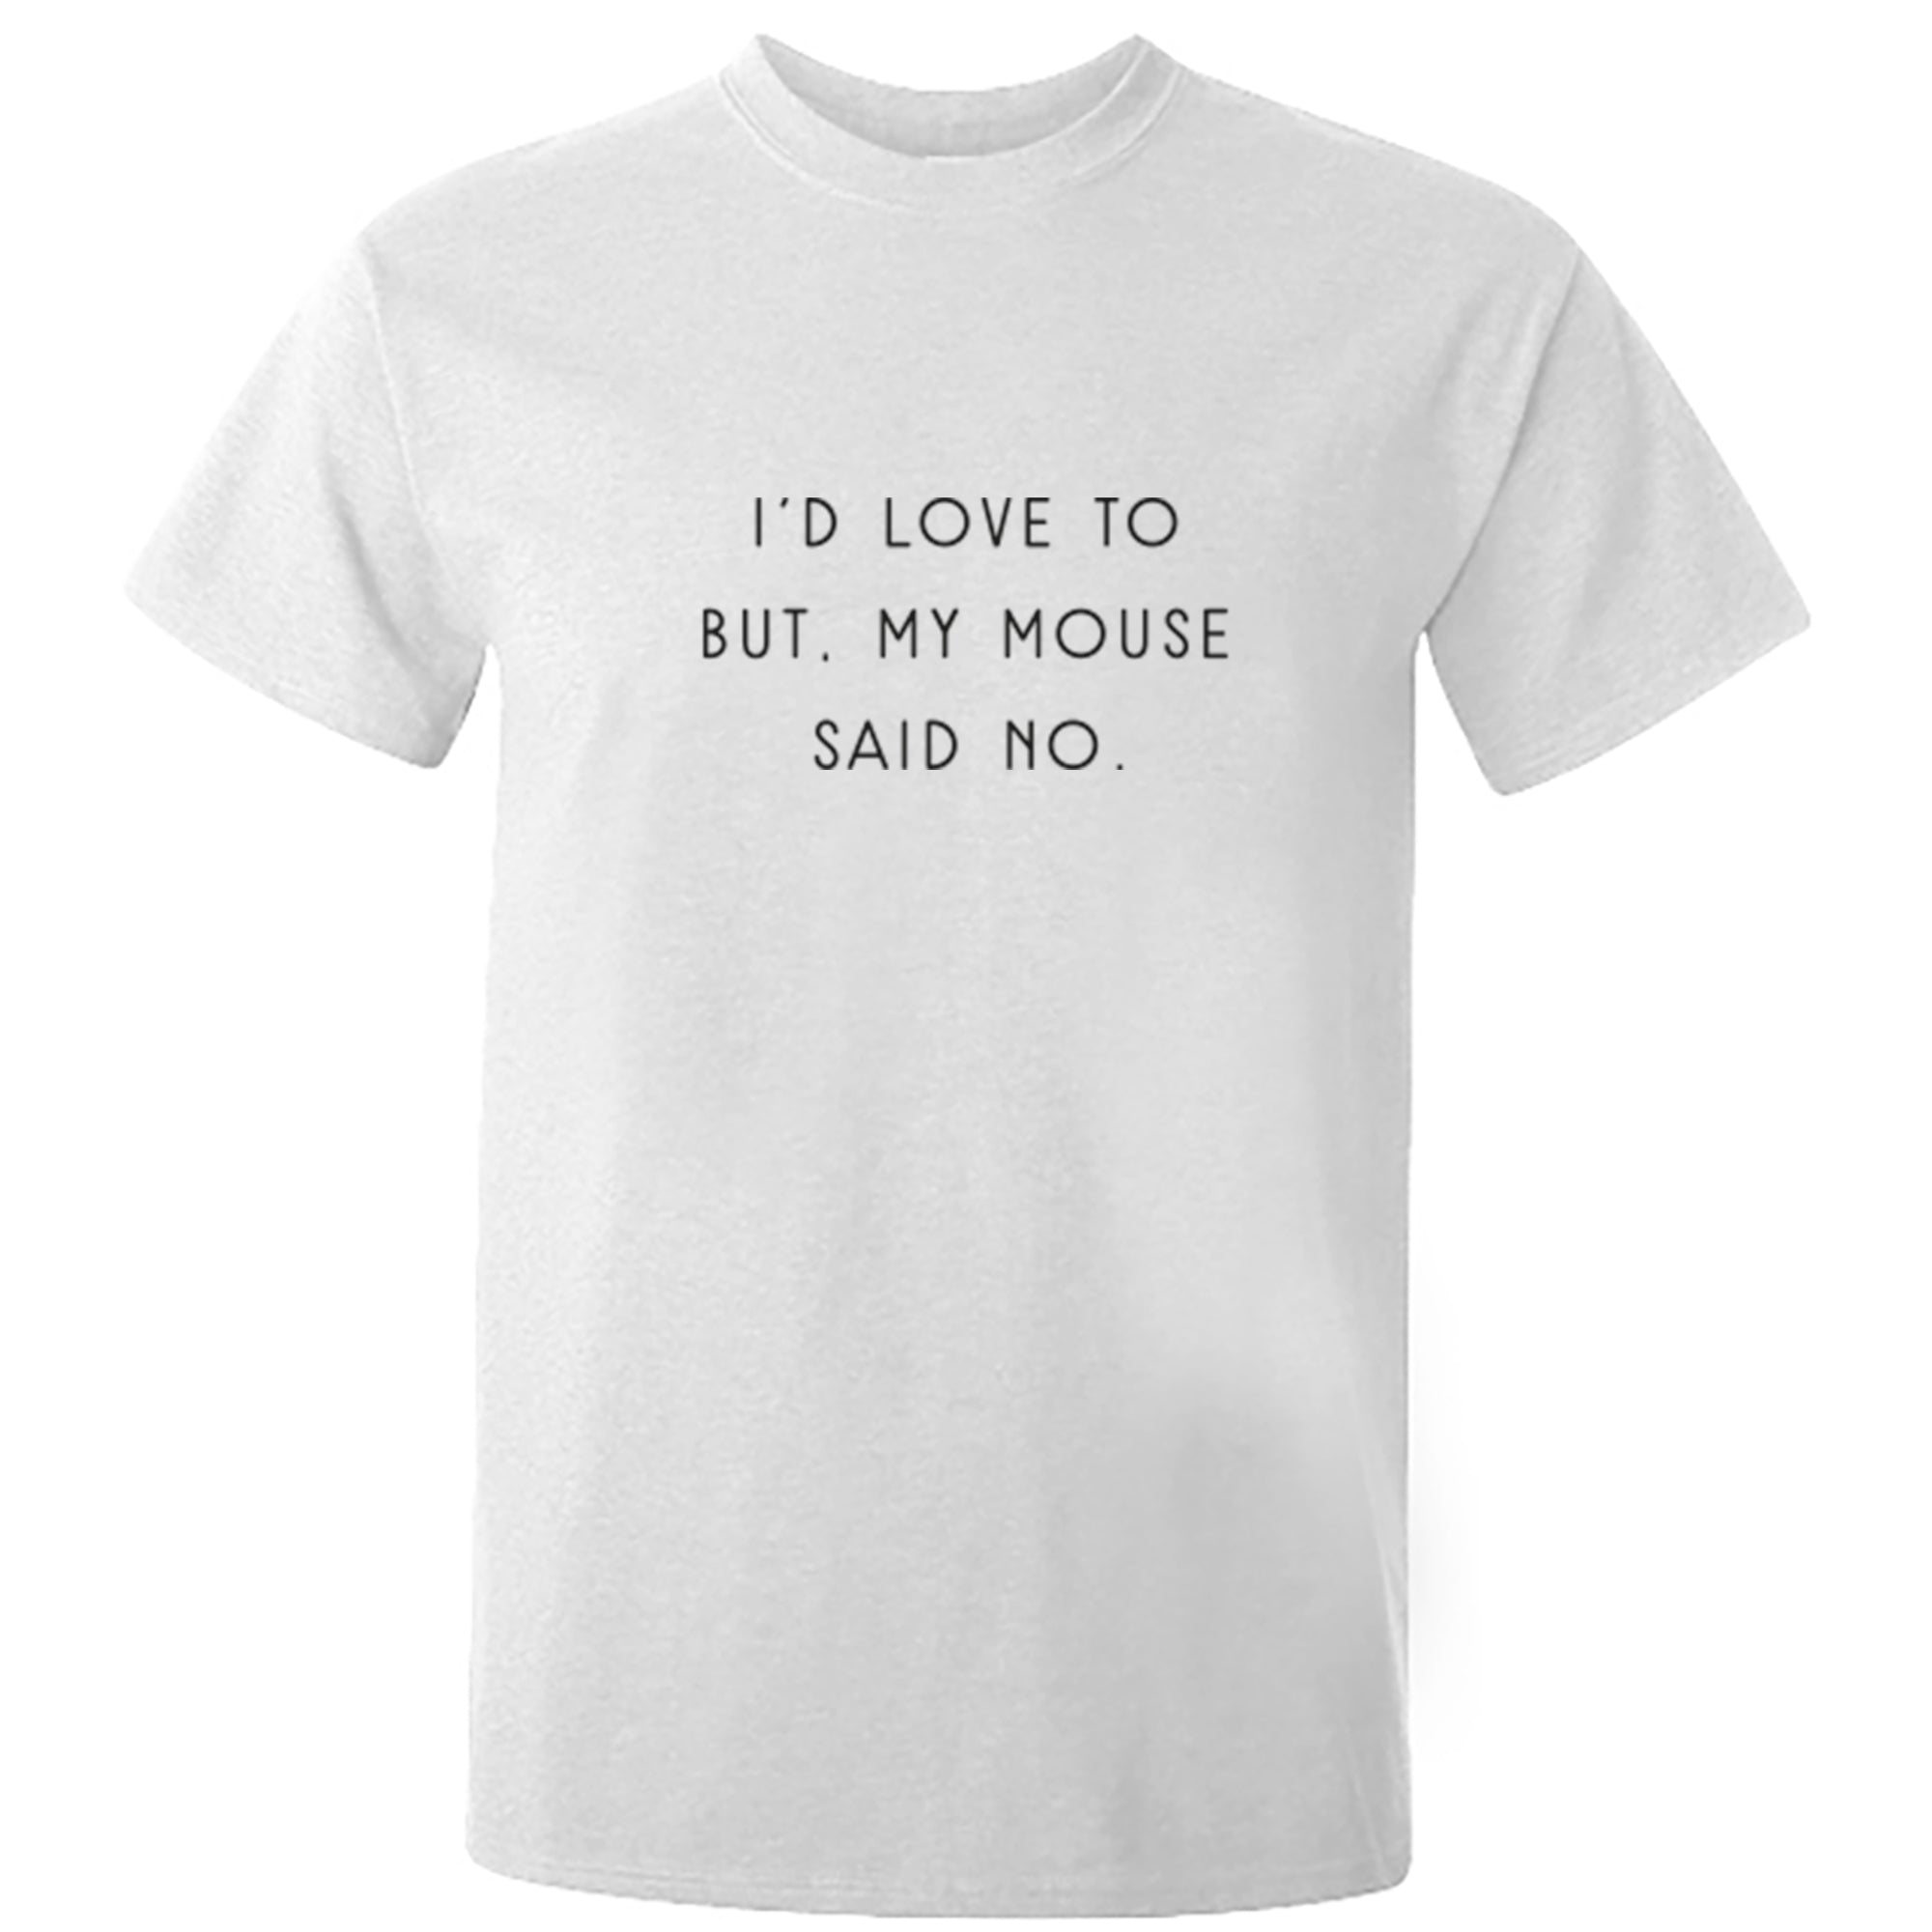 I'd Love To But, My Mouse Said No Unisex Fit T-Shirt S1064 - Illustrated Identity Ltd.